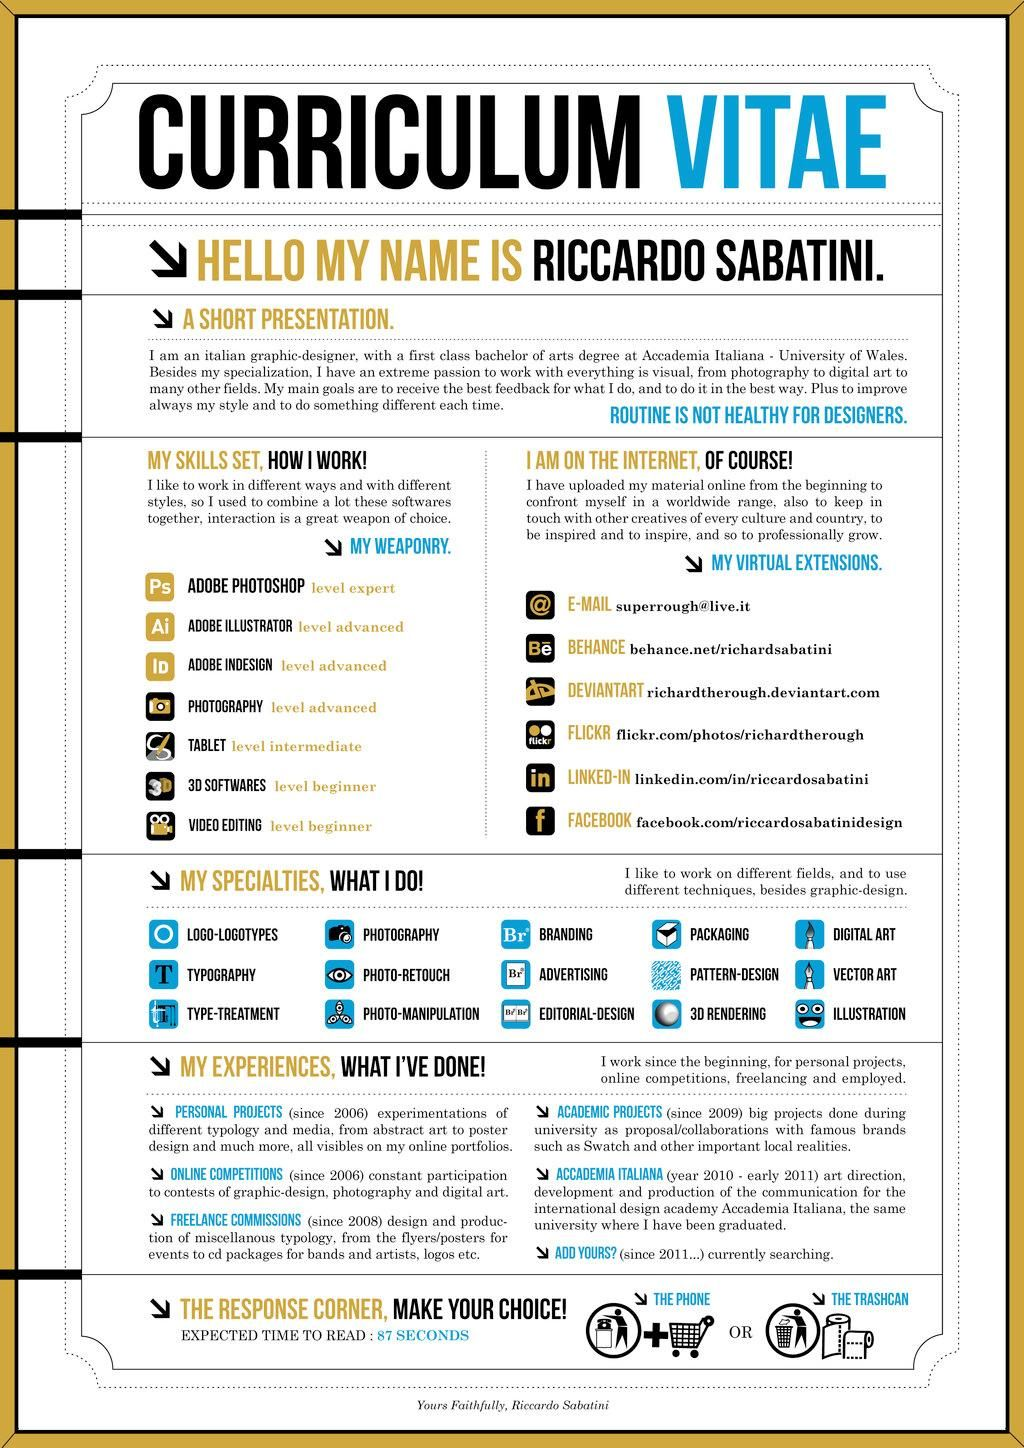 graphic designer resume tips and examples photography graphic in today s job market recruiters are placing more emphasis on job seeker personalities depicted on social media profiles and creative resume enhancers than